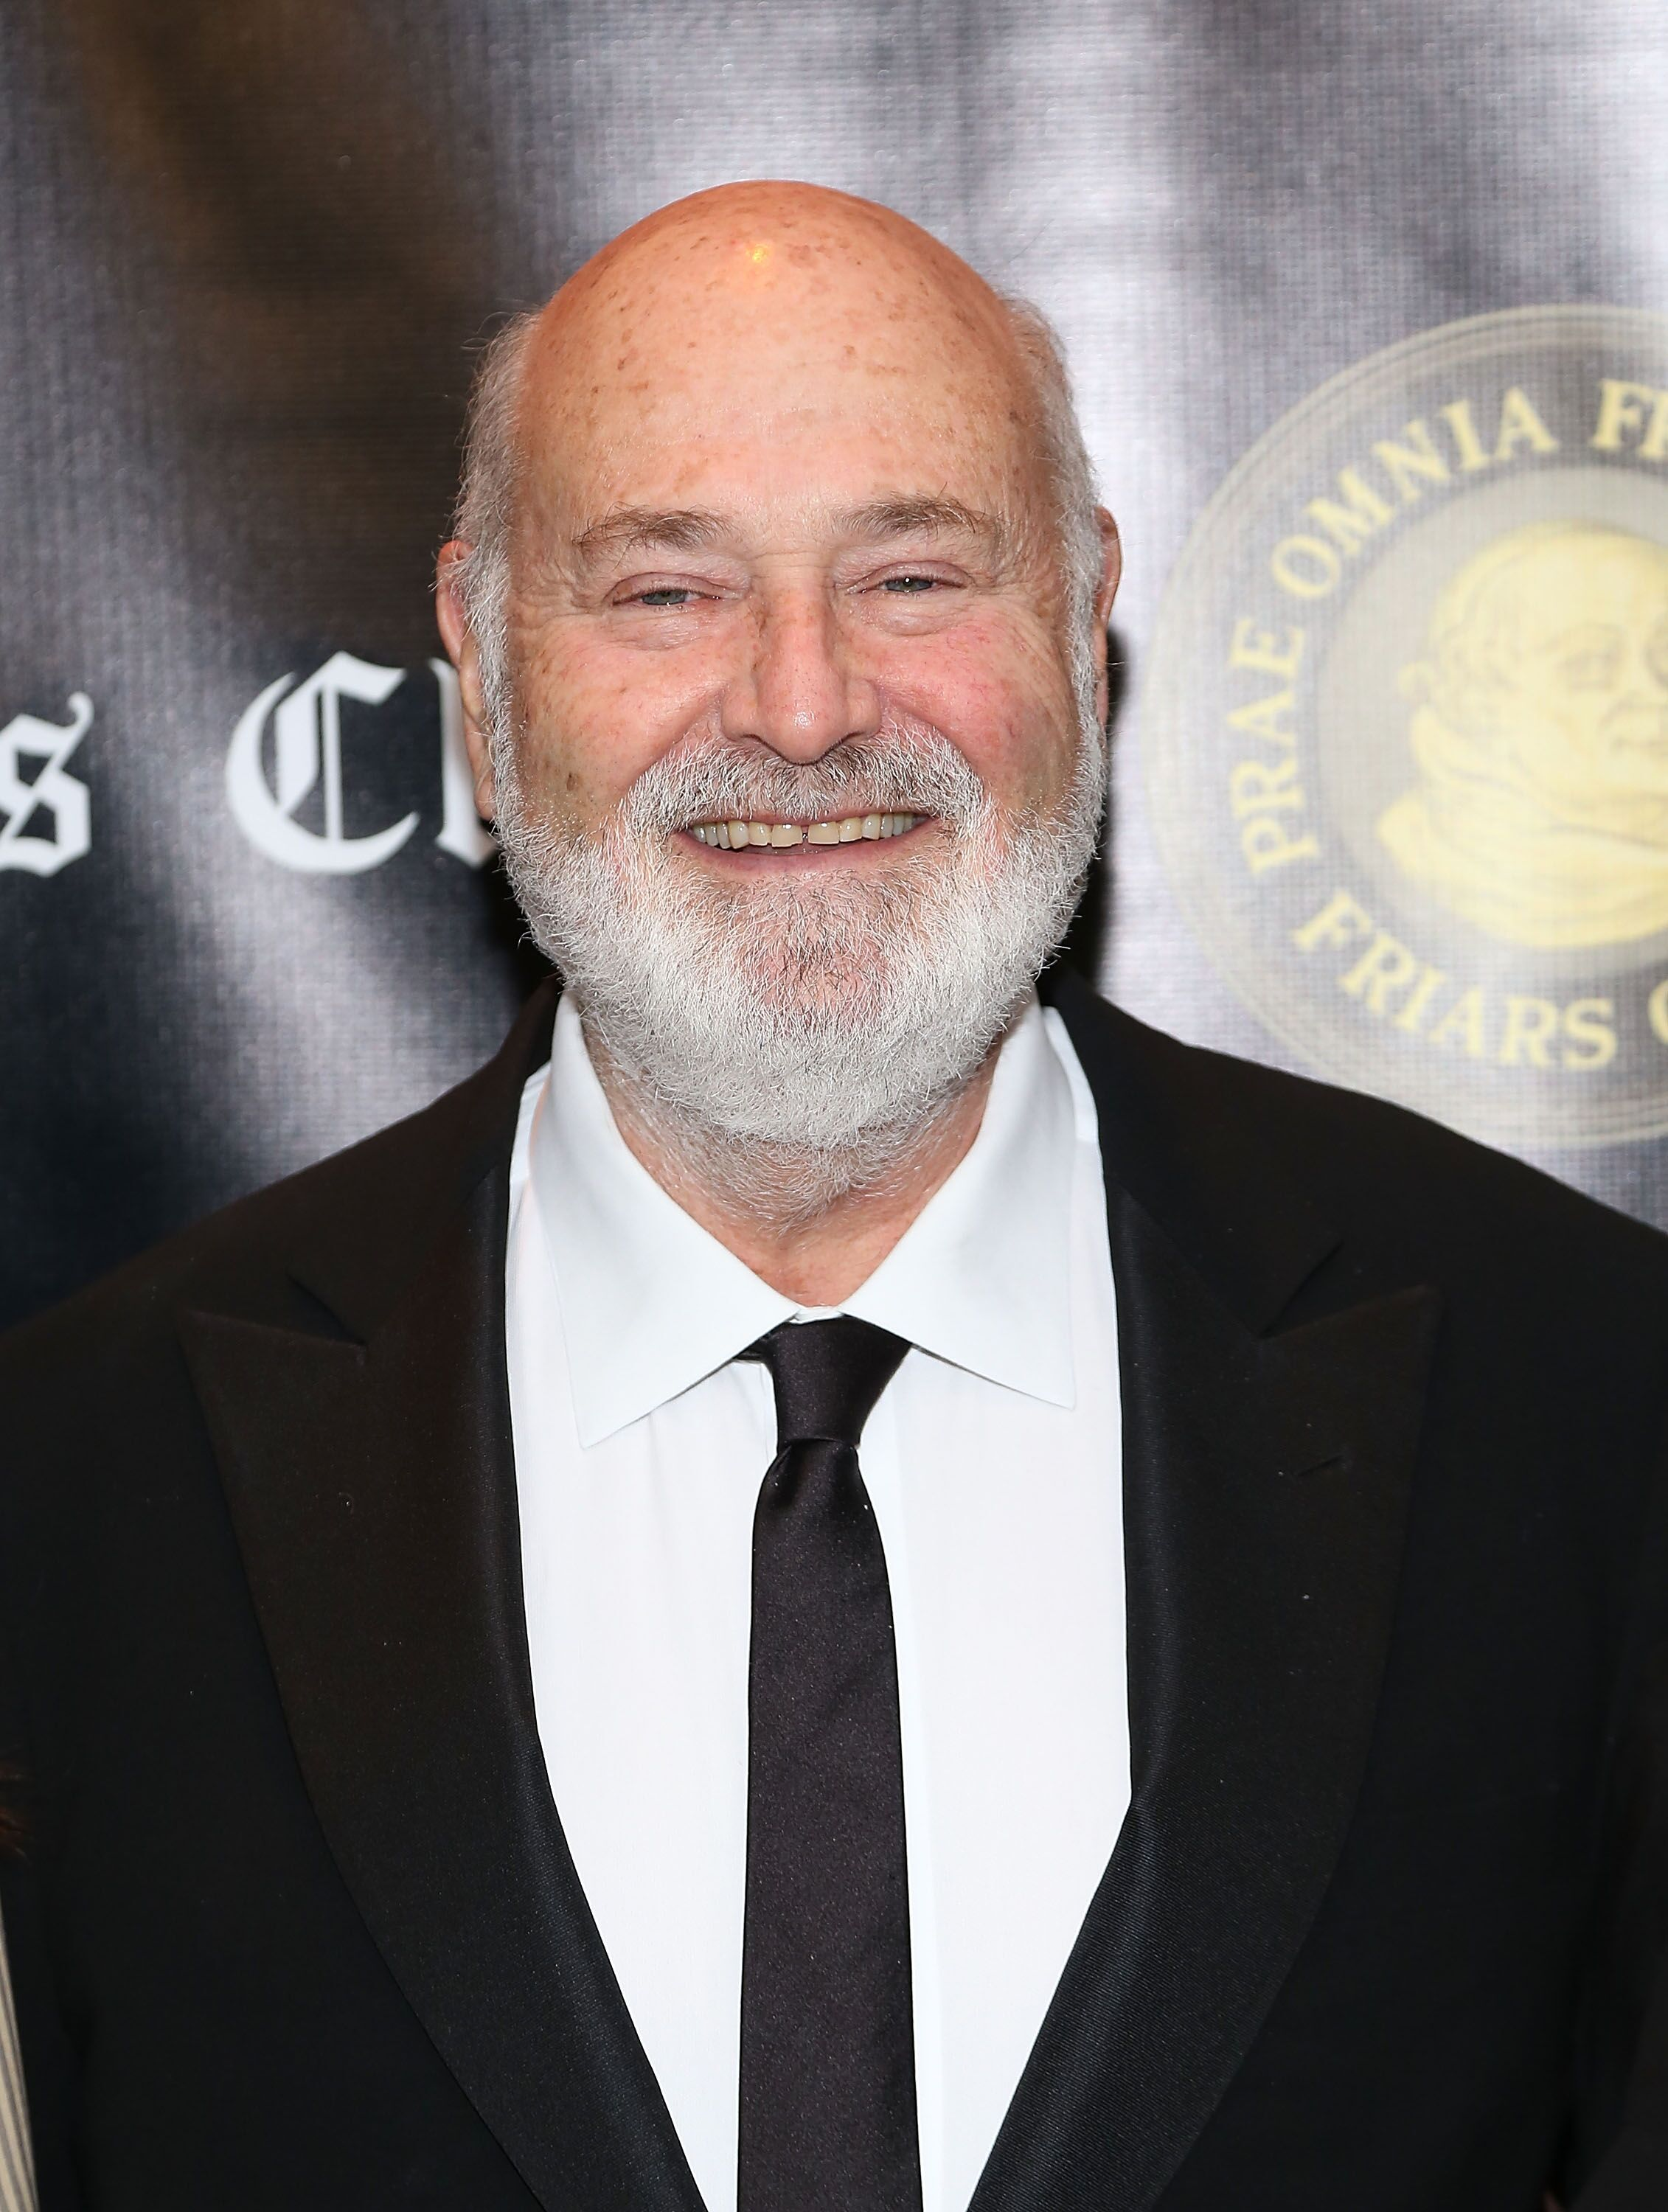 Rob Reiner at the Friar's Club Entertainment Icon Award on November 12, 2018. | Source: Getty Images